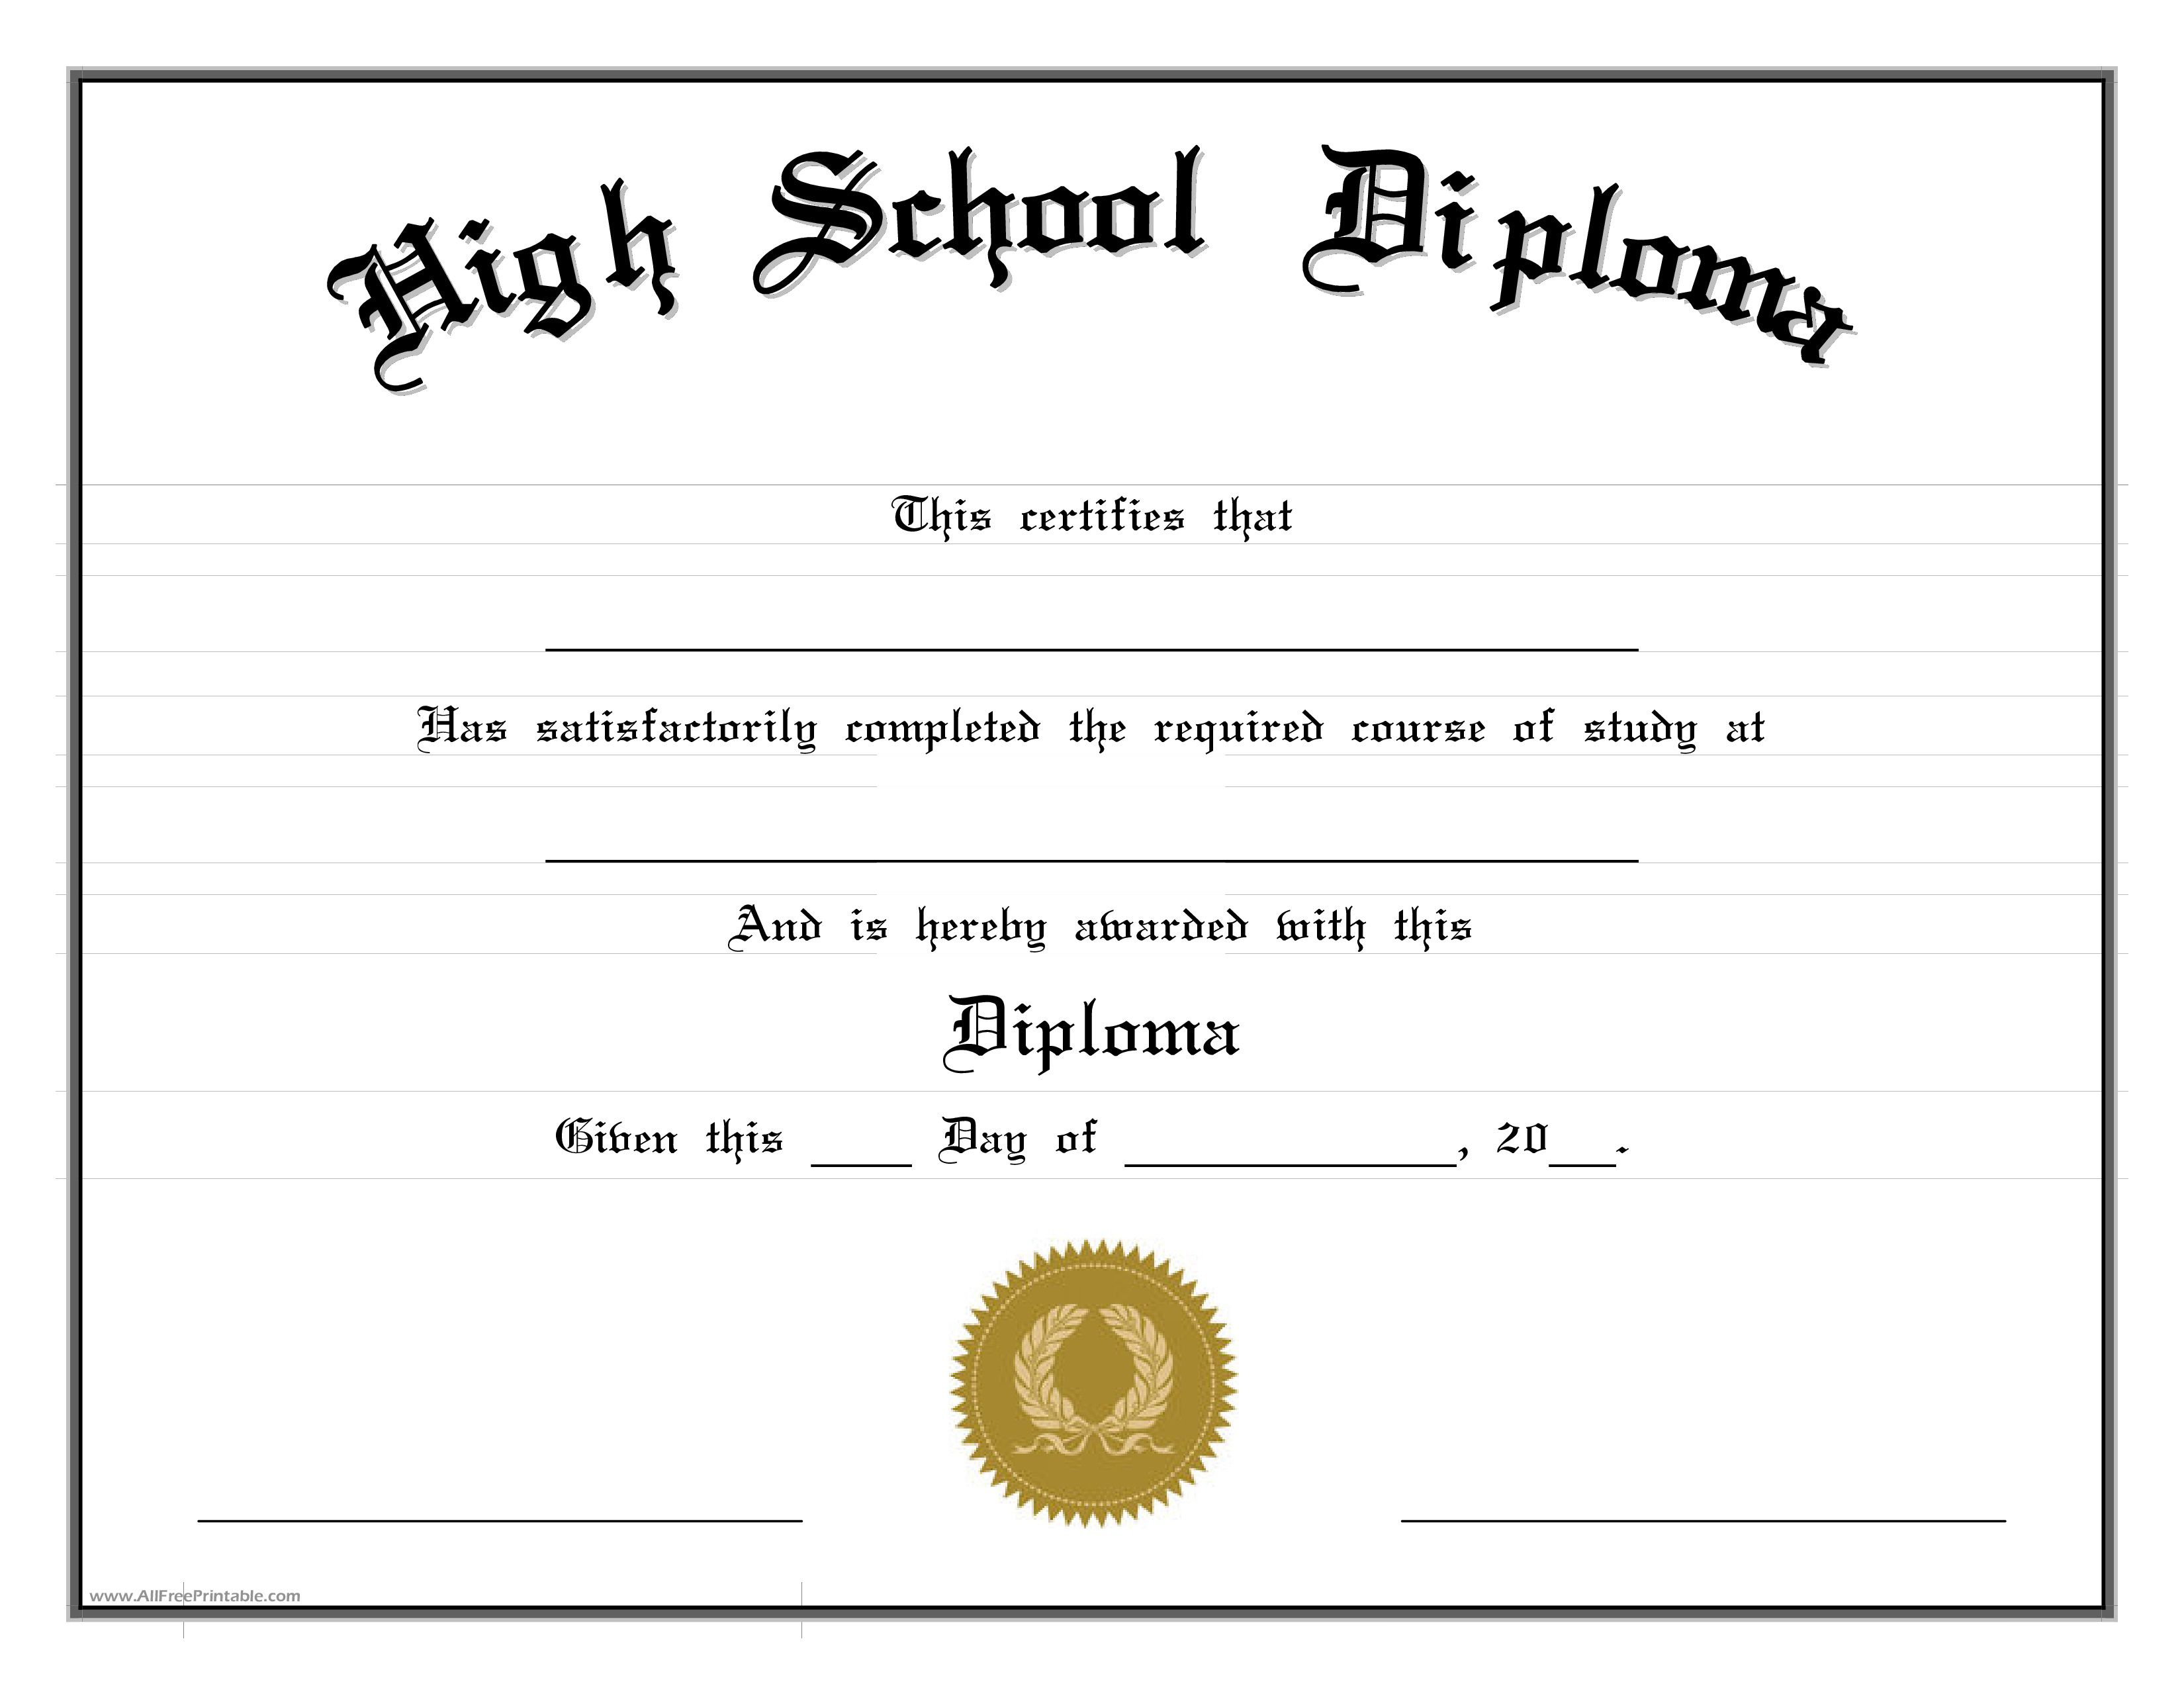 001 Fantastic High School Diploma Template Picture  With Seal Homeschool Free Printable BlankFull